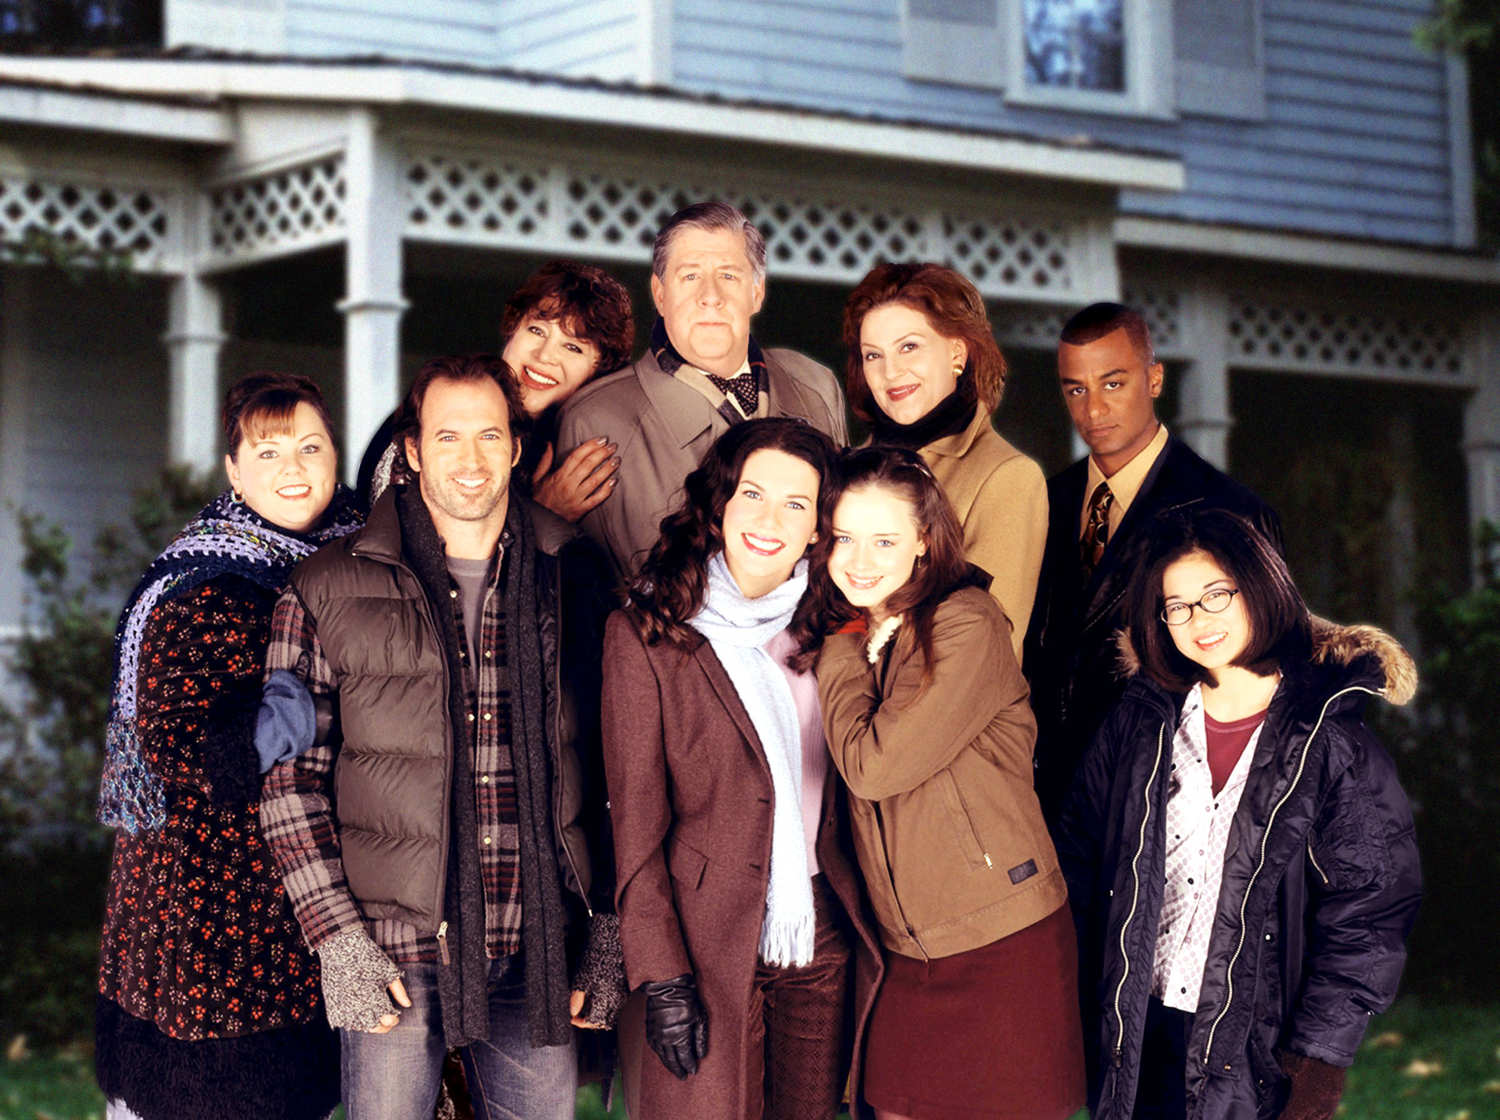 Isn't this the most amazing photo of all time? It looks like they got together at Sears to take this. I was searching for Gilmore GIrls photos on the Internet, this popped up, and I HAD to use it.